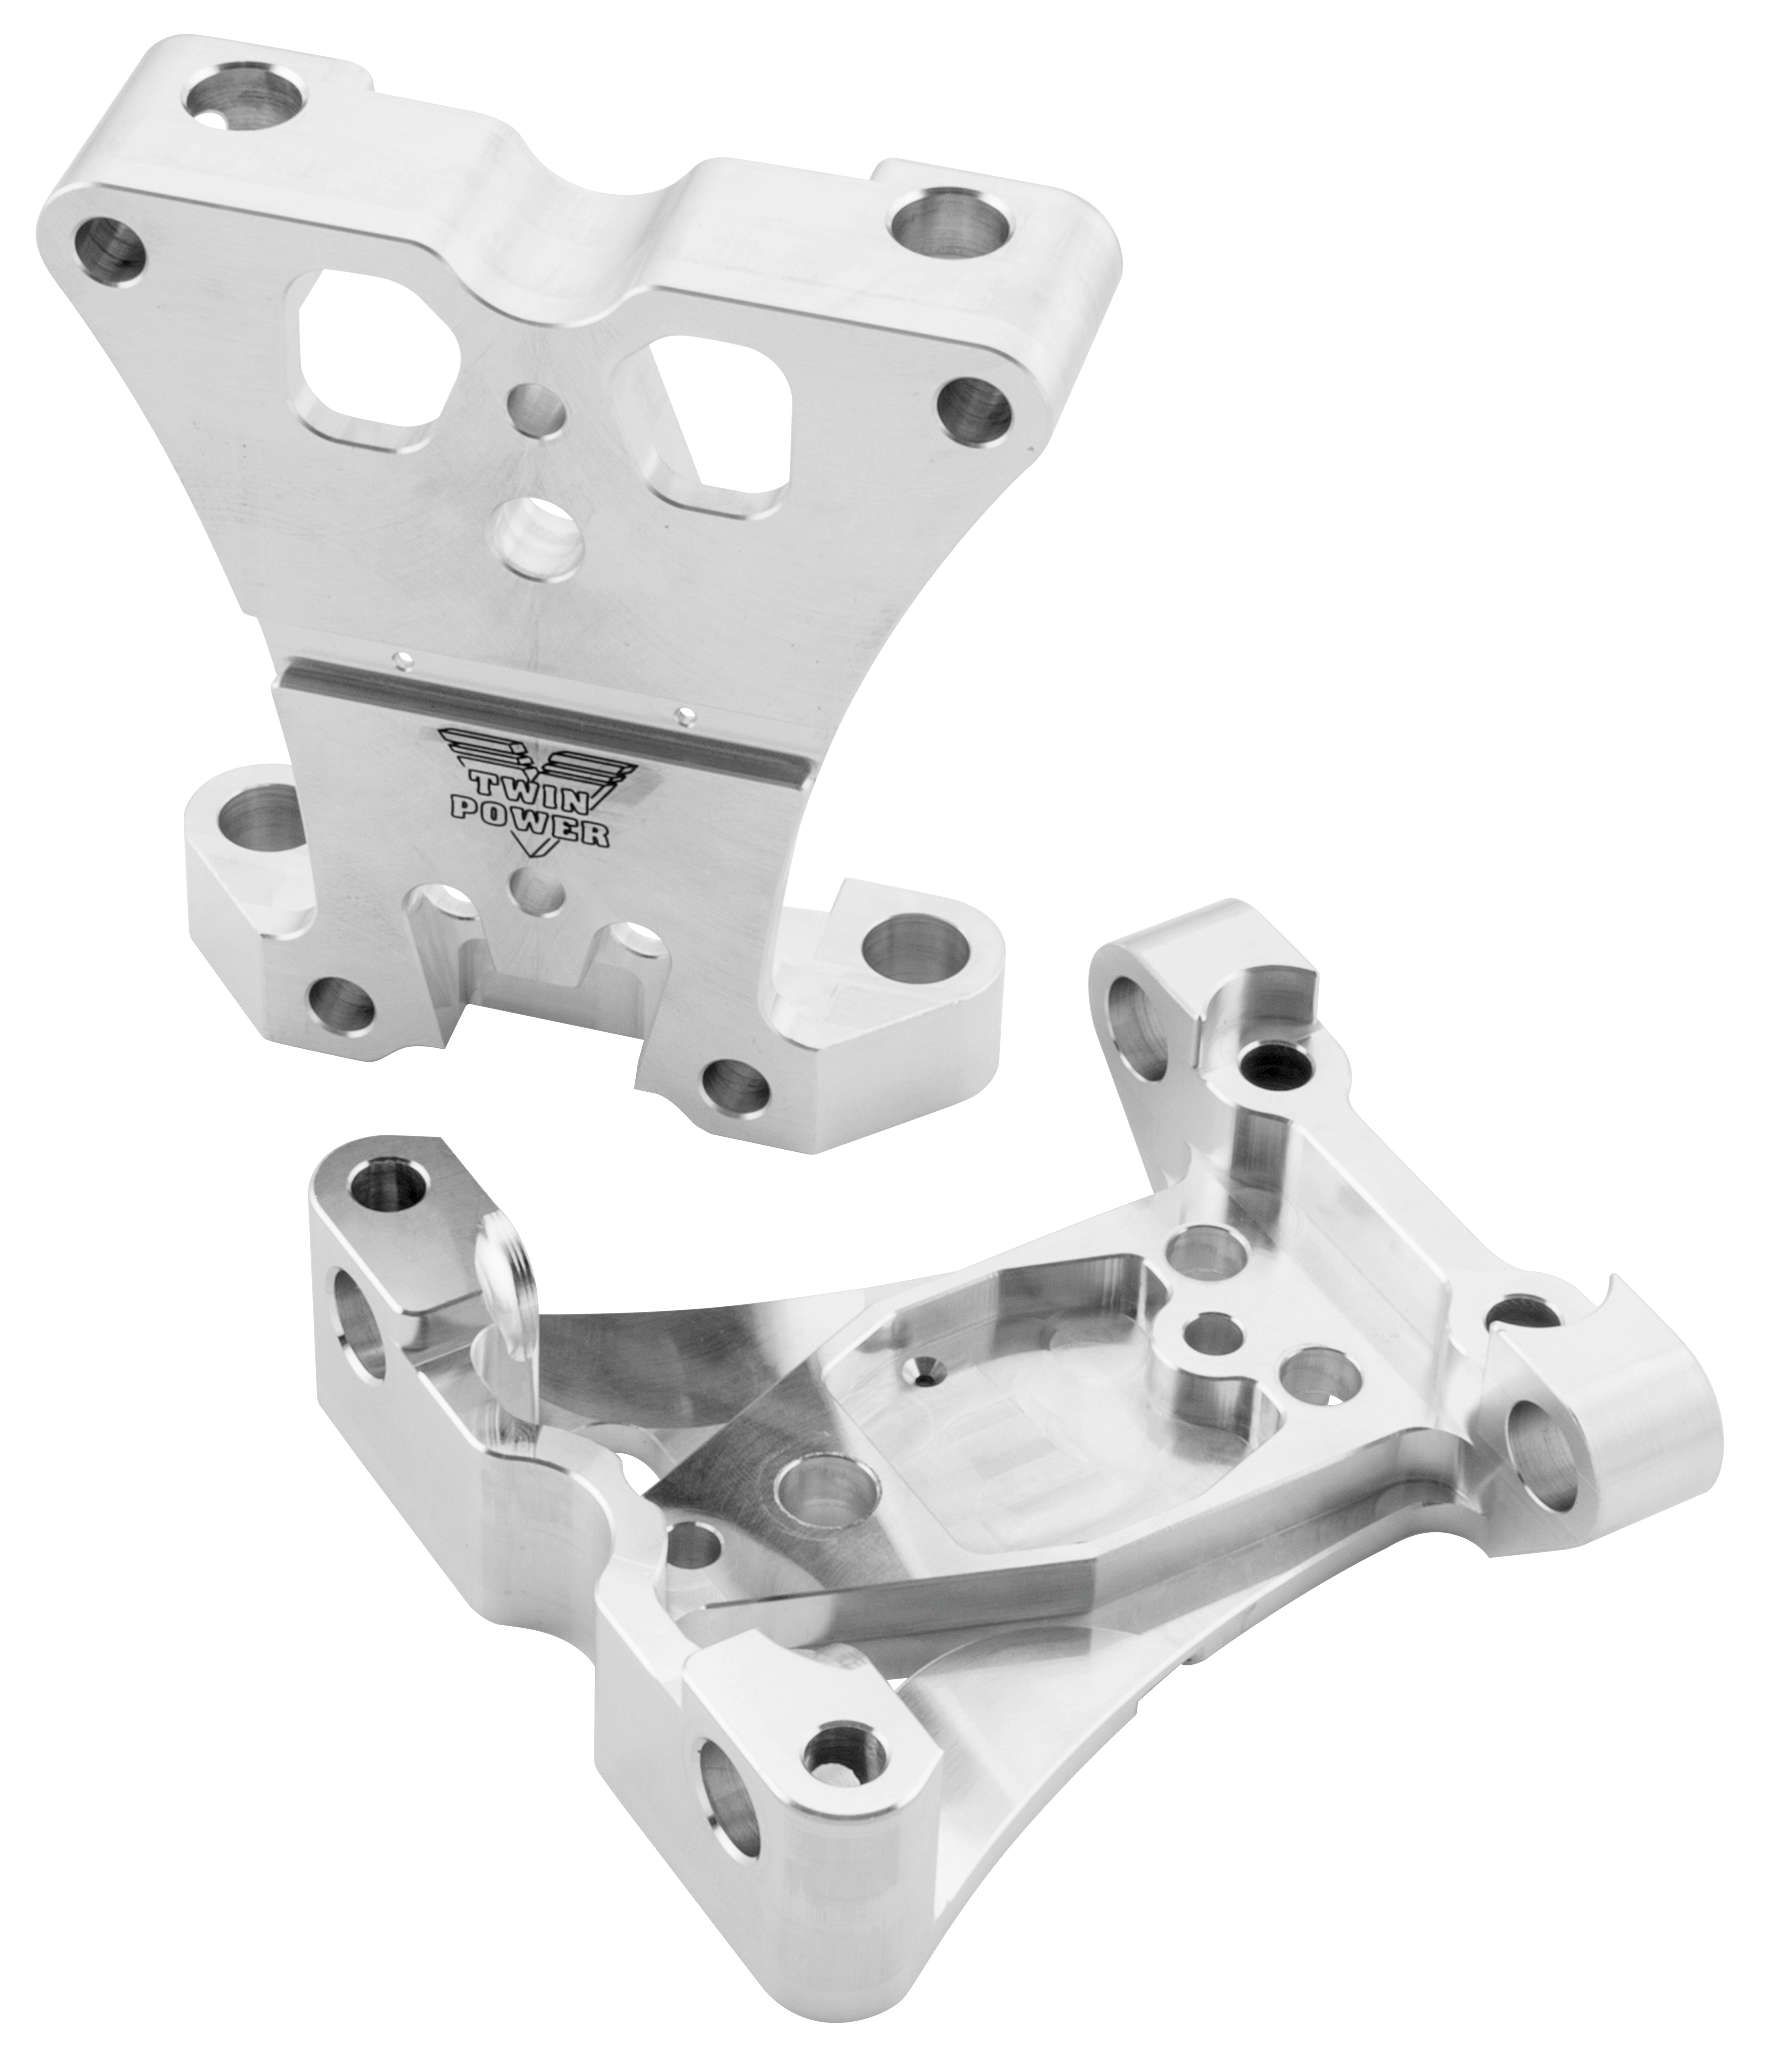 harley manual primary chain tensioner